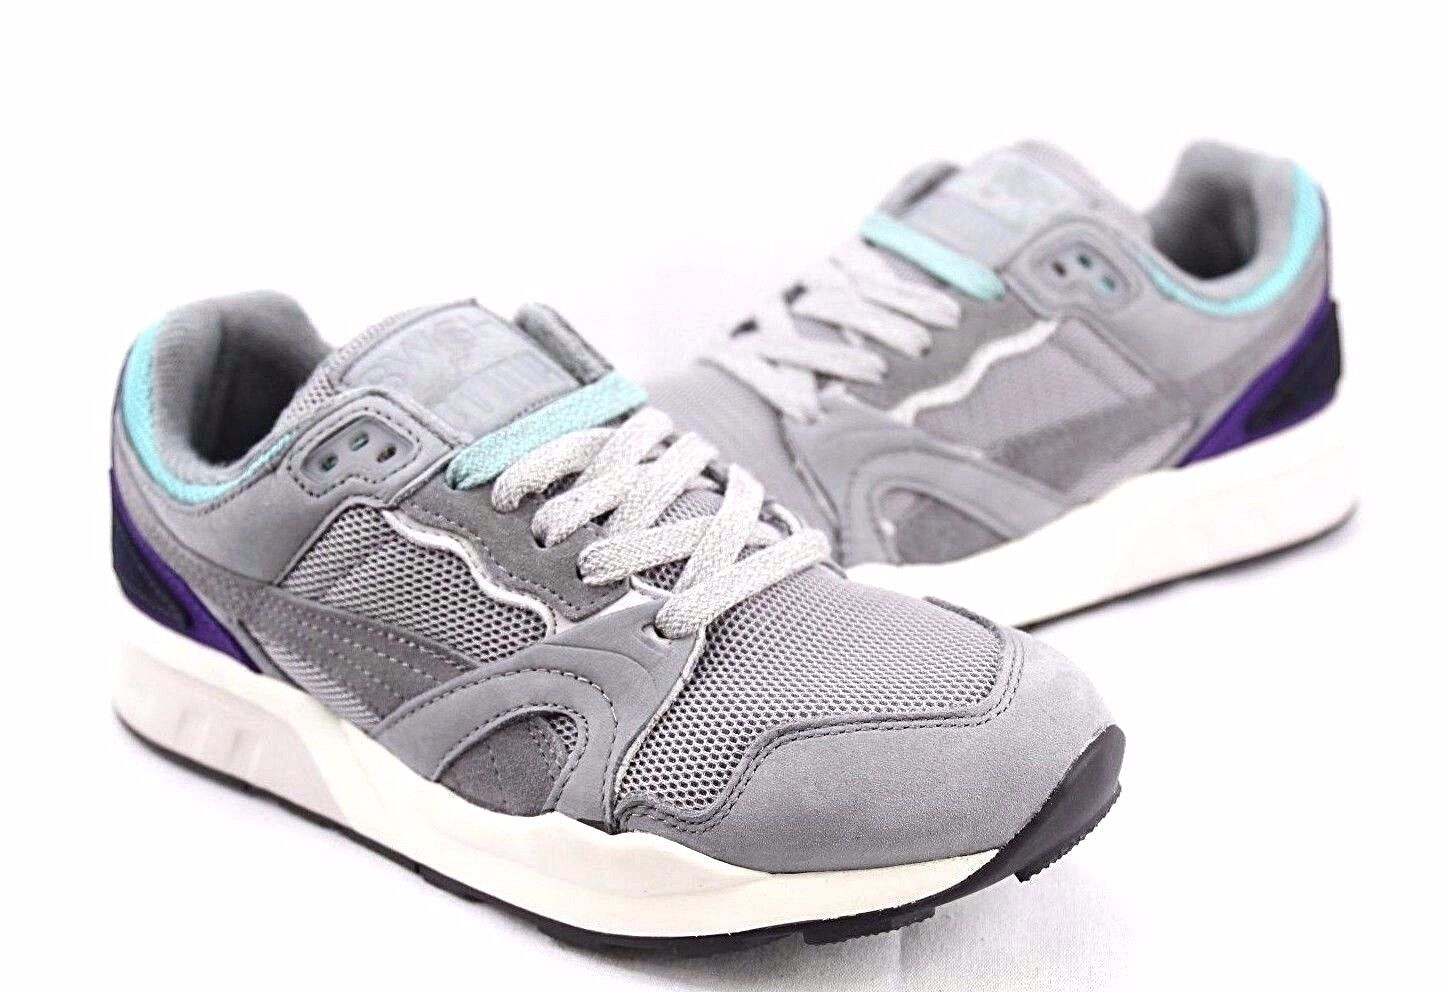 Puma Men's Shoes XT2 X BWGH 'Frost Gray' 357739-02 Fashion Sneakers Sizes 7 ~ 11